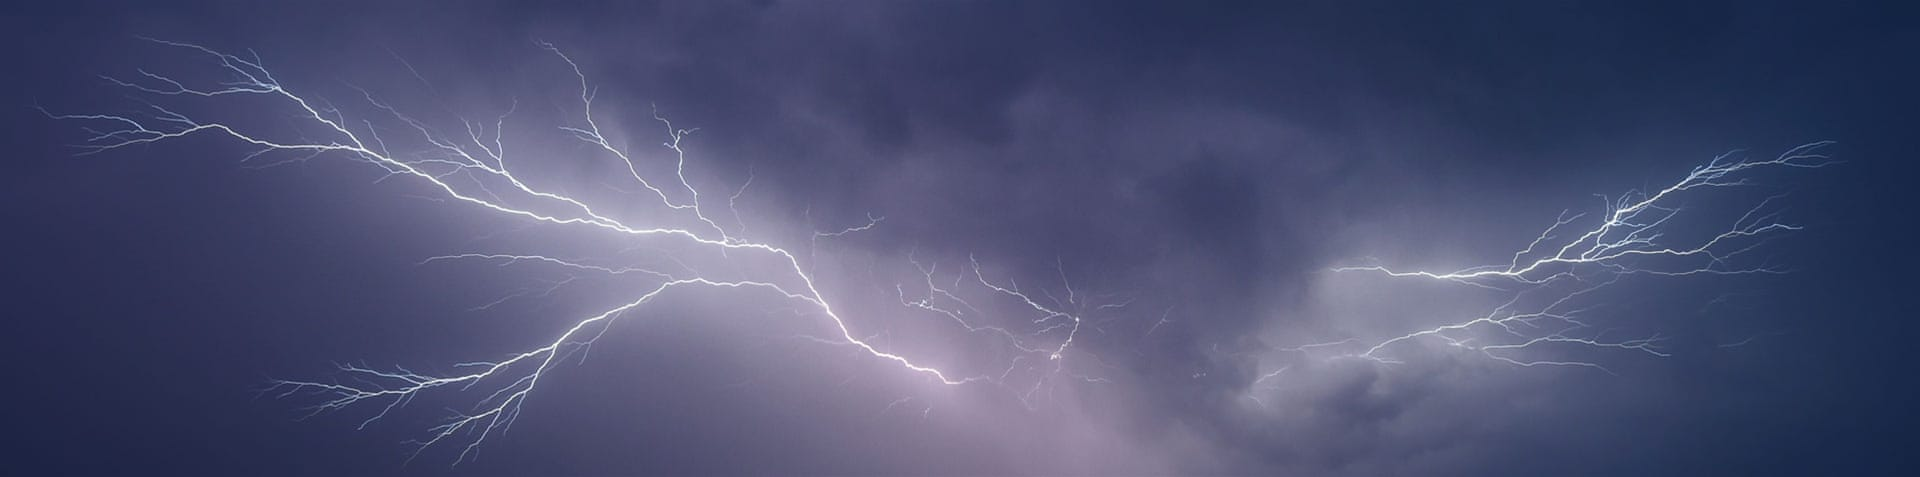 Lightning strikes kill more than 2,000 people in India every year [Reuters]